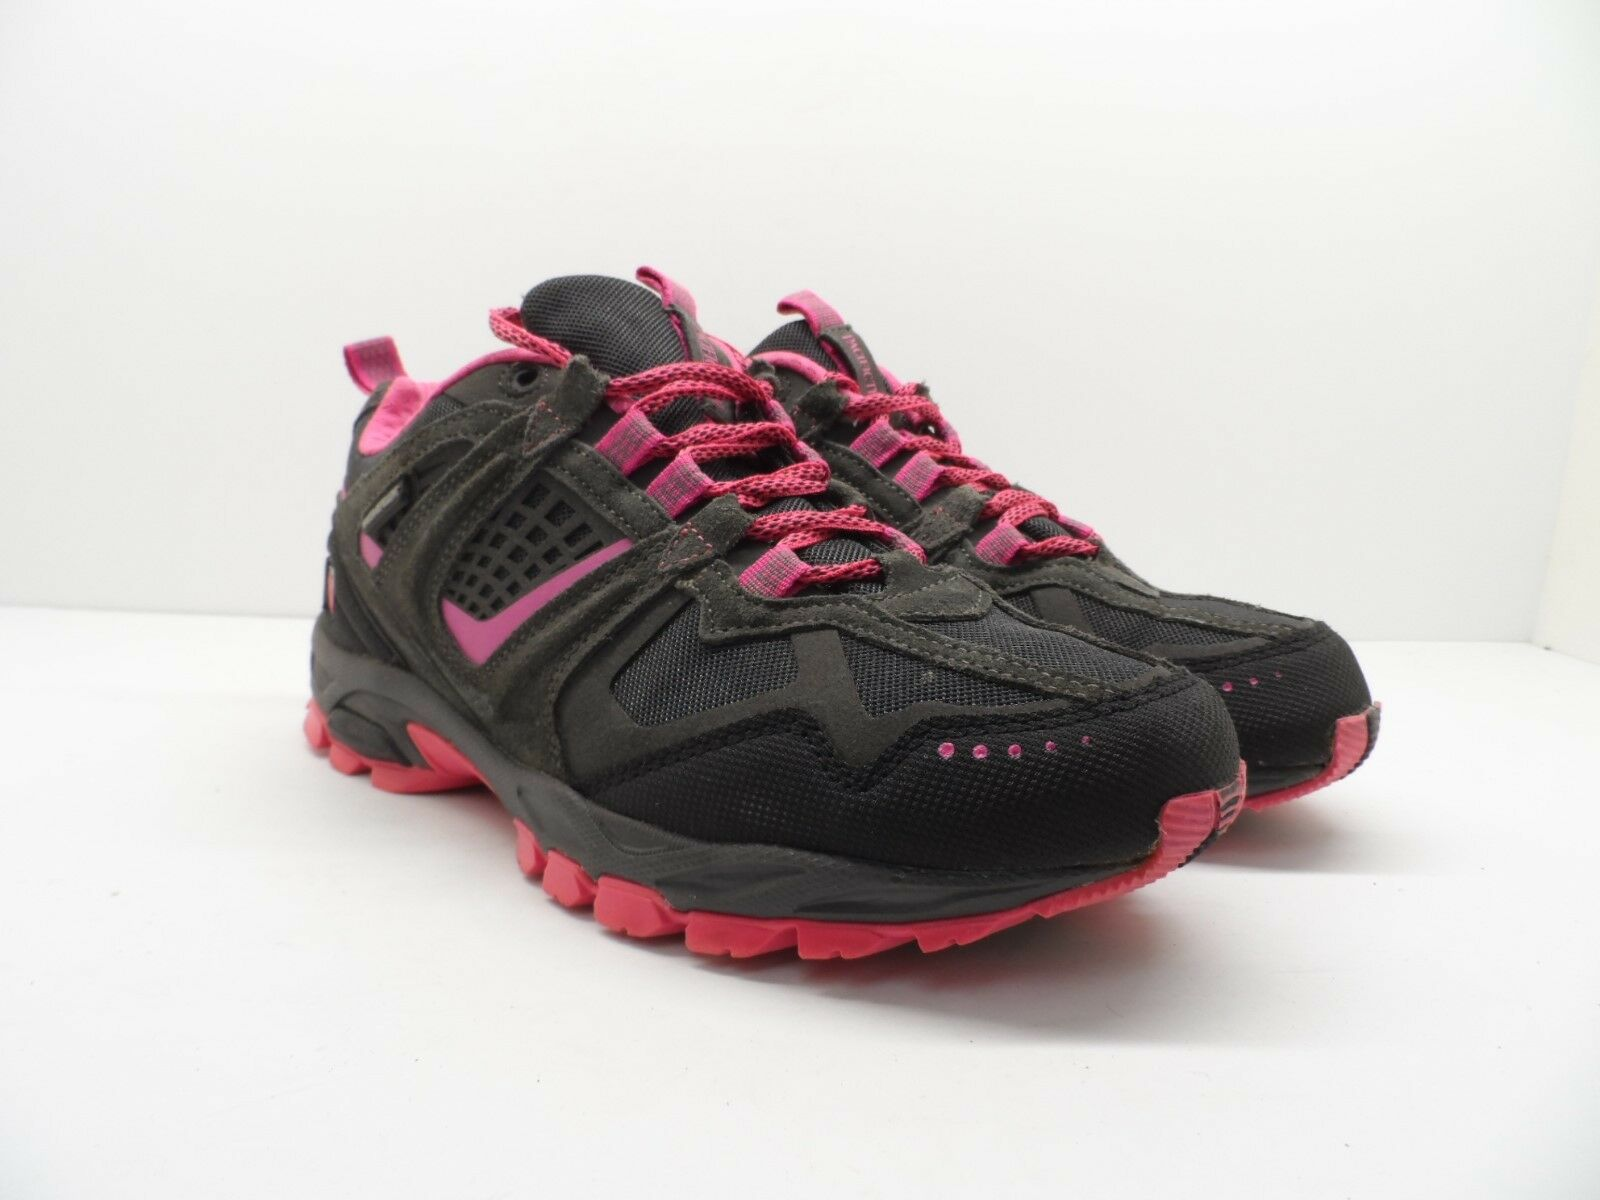 Pacific Trail Women's Gray Cinder Trail Running Shoe Gray Women's Pink Size 10M 280550